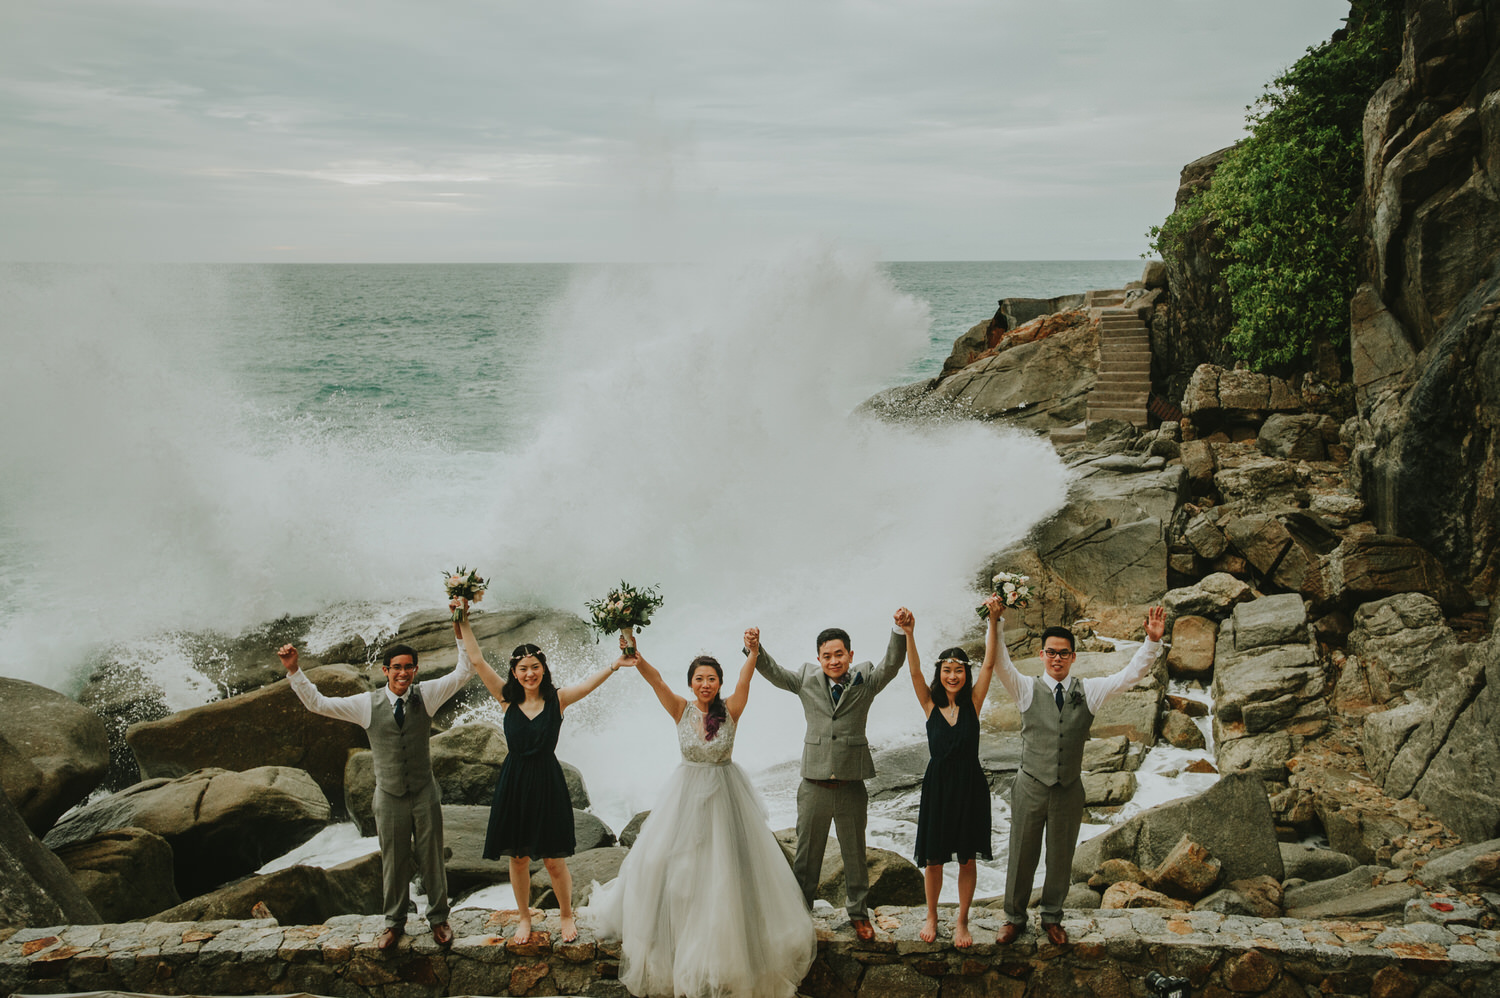 phuket wedding-diktatphotography-alex&andy wedding-116